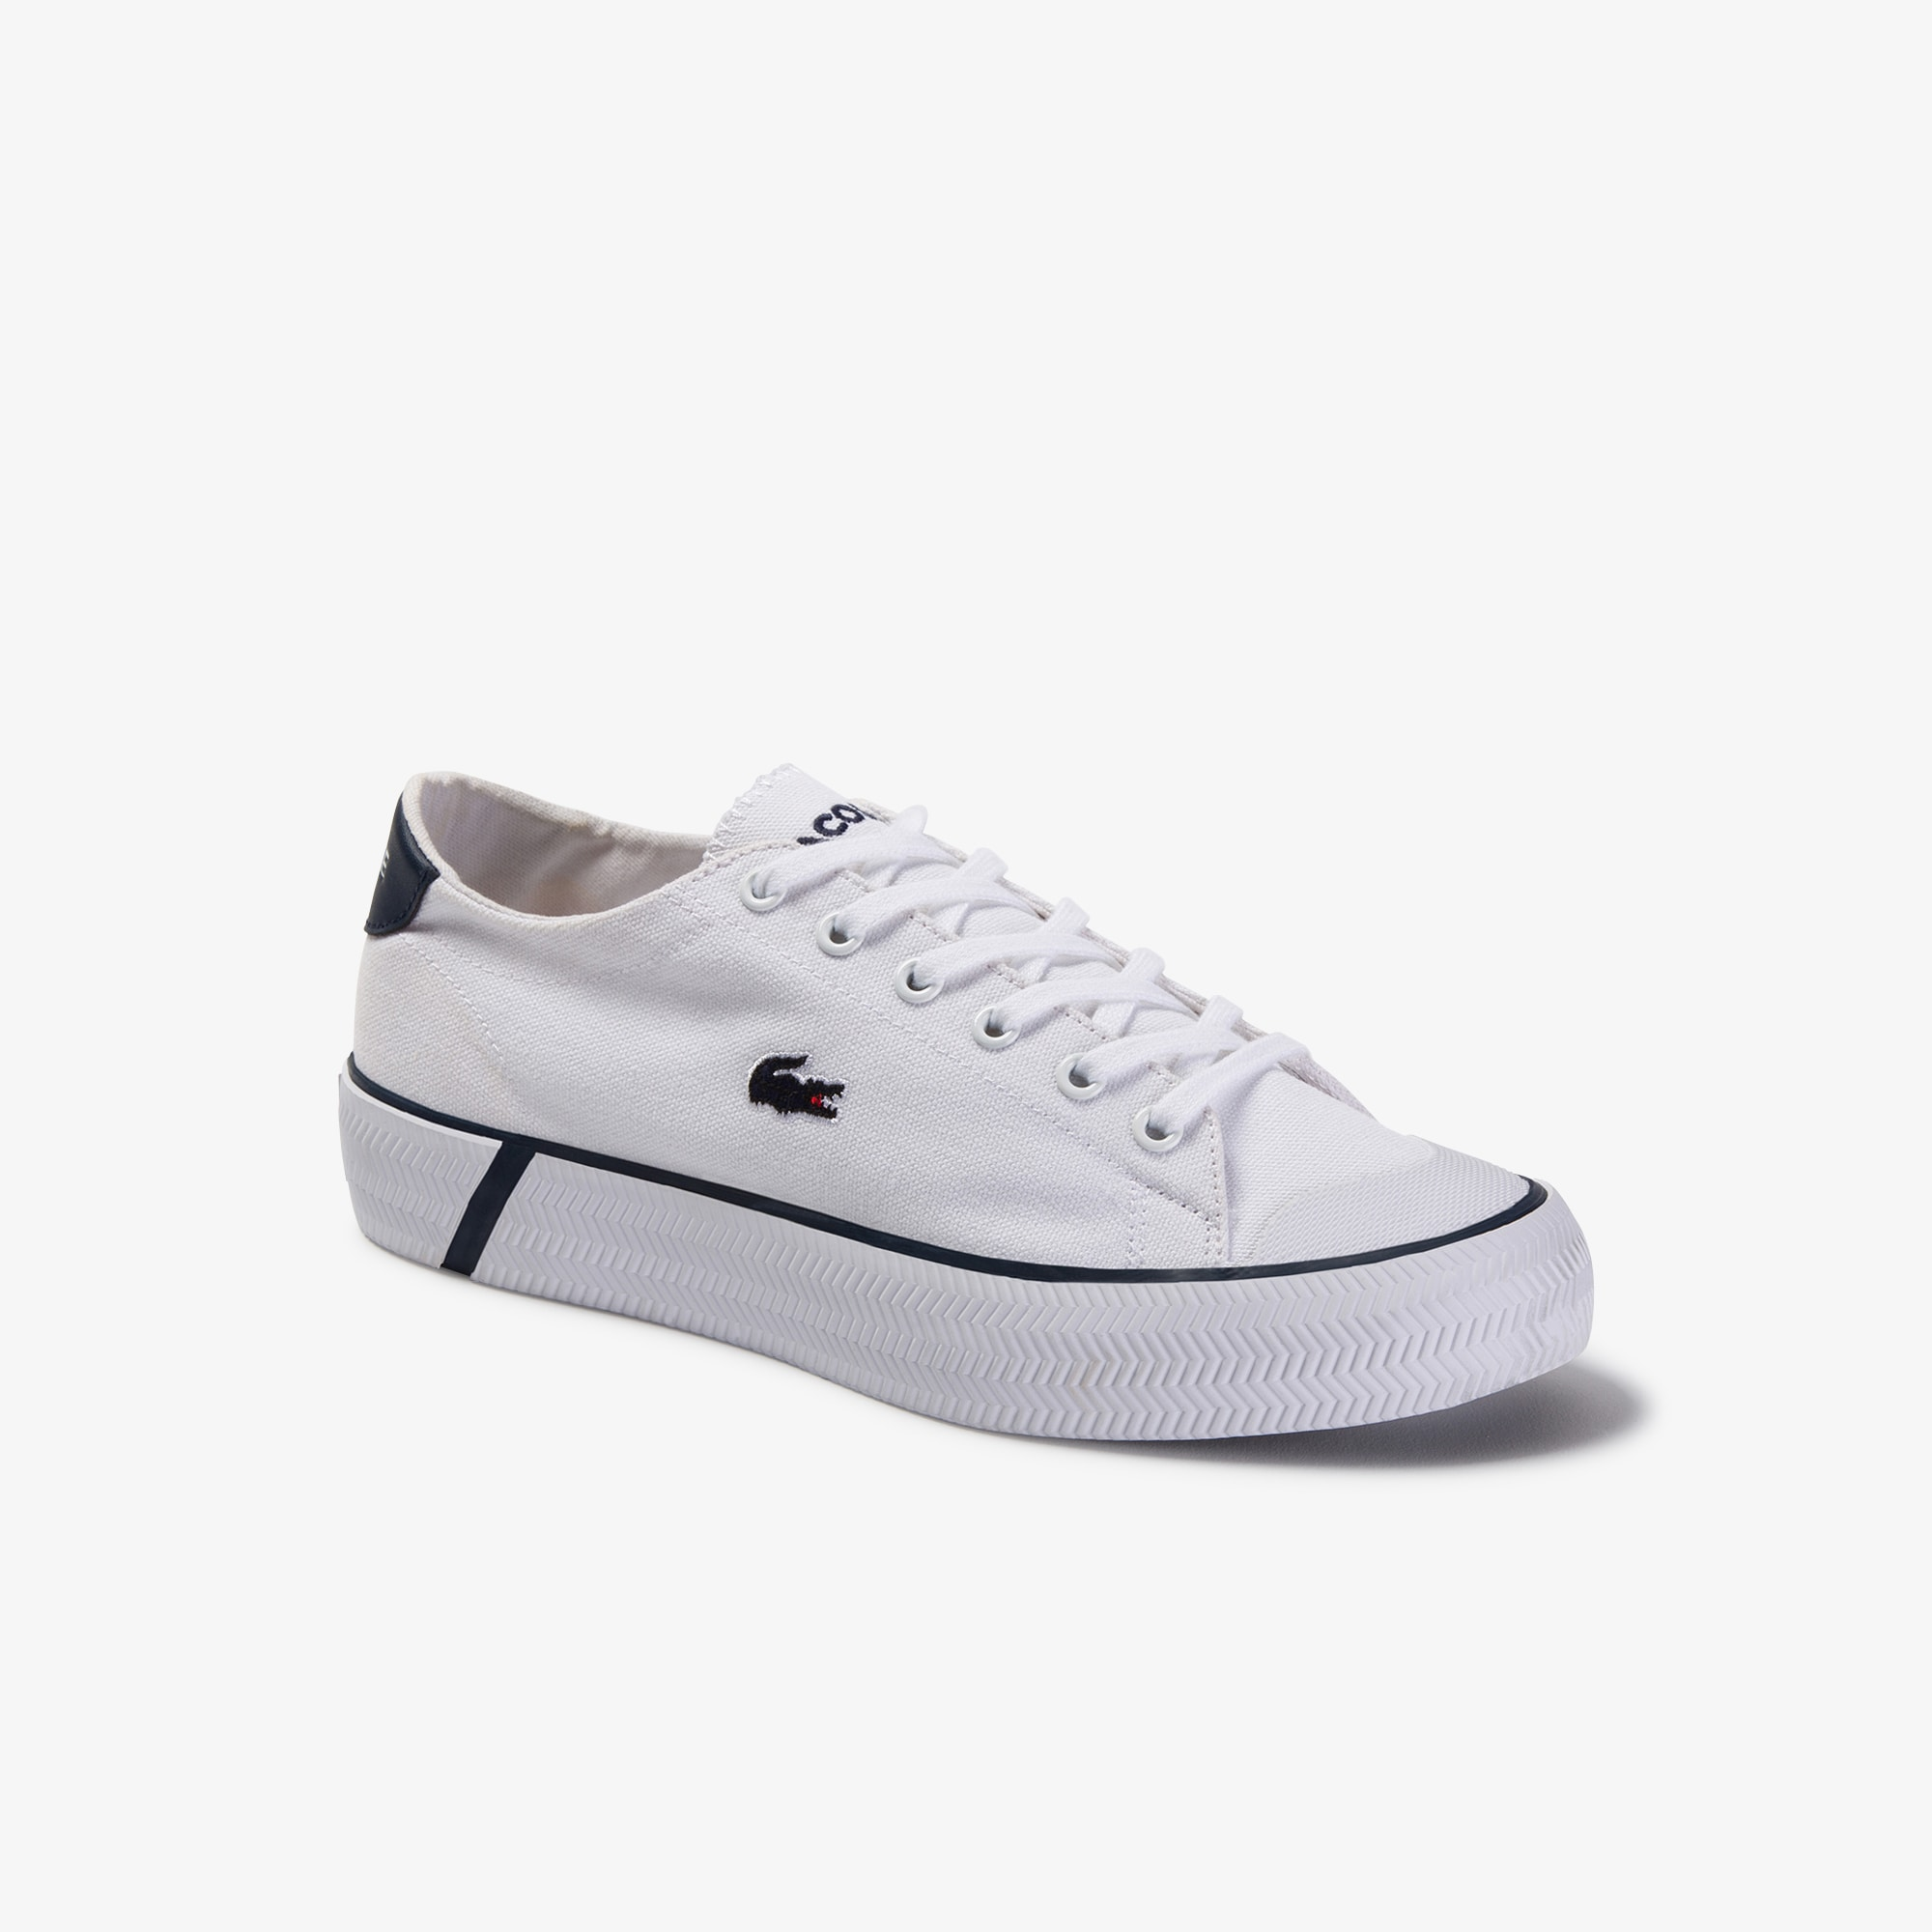 Women's Gripshot Canvas Sneakers